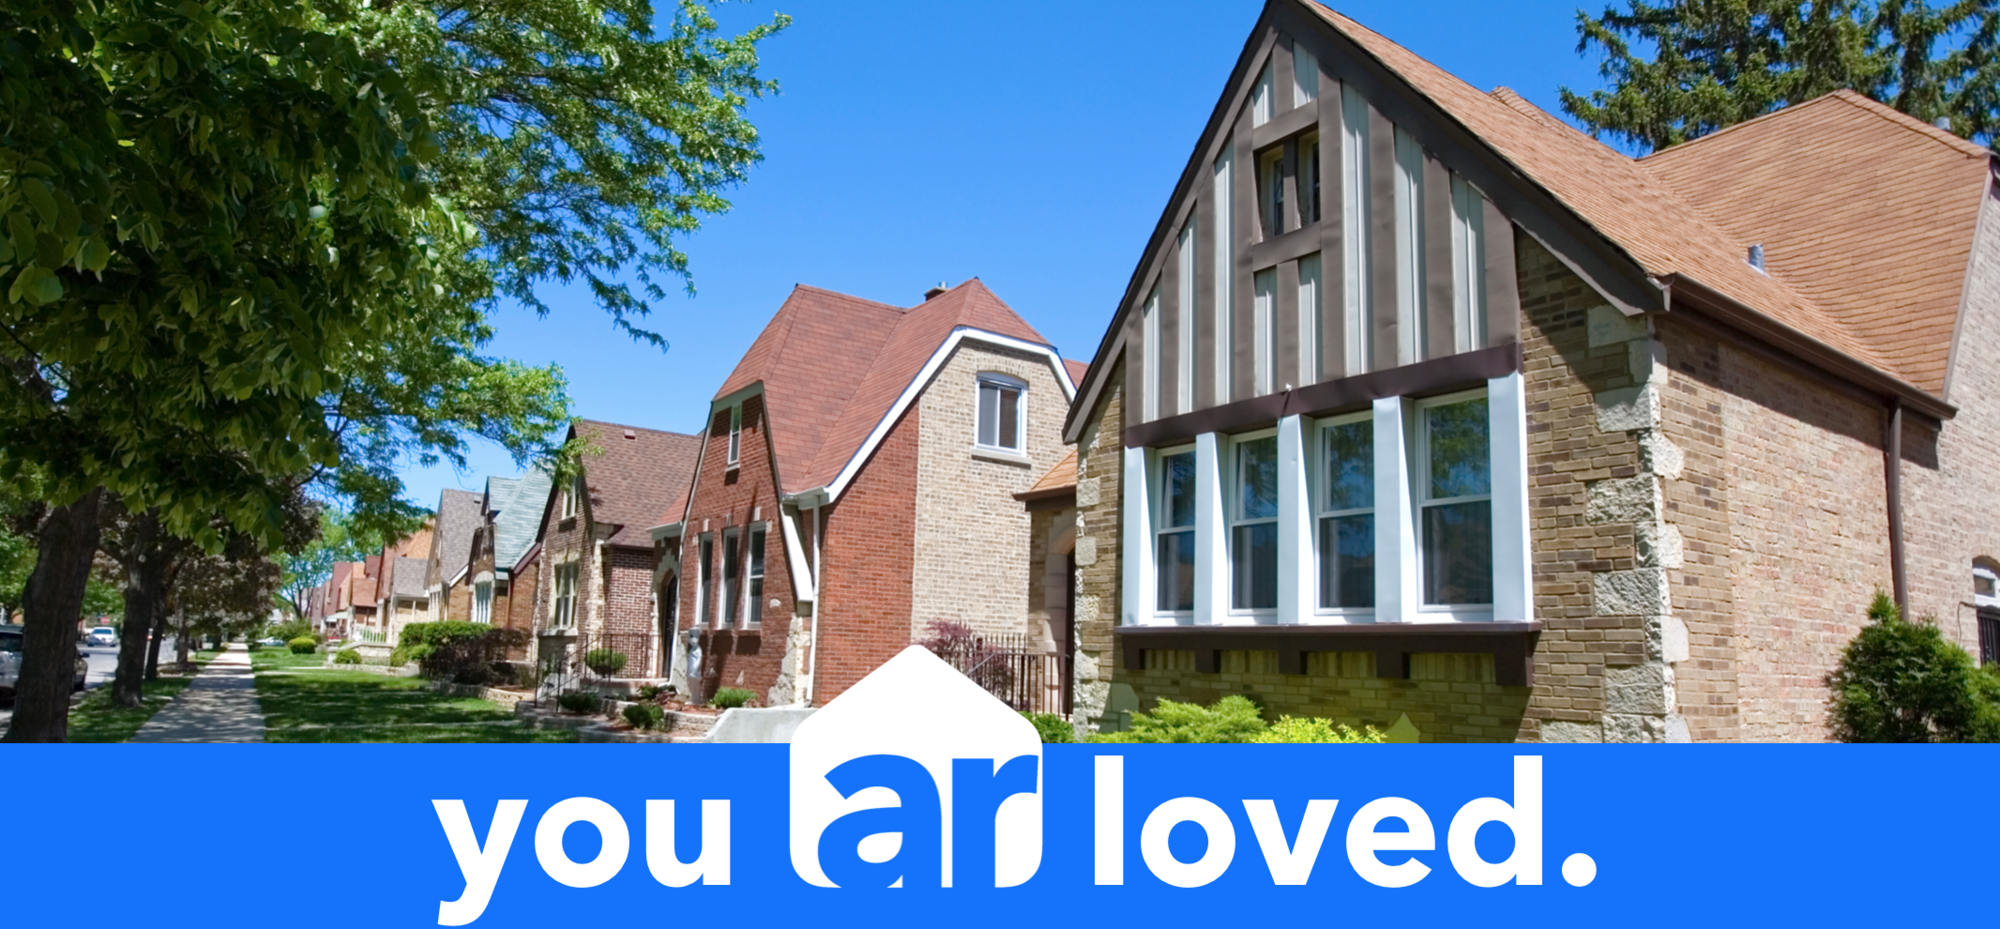 Street showcasing homes in Chicago during the summertime with a you ar loved slogan undereath